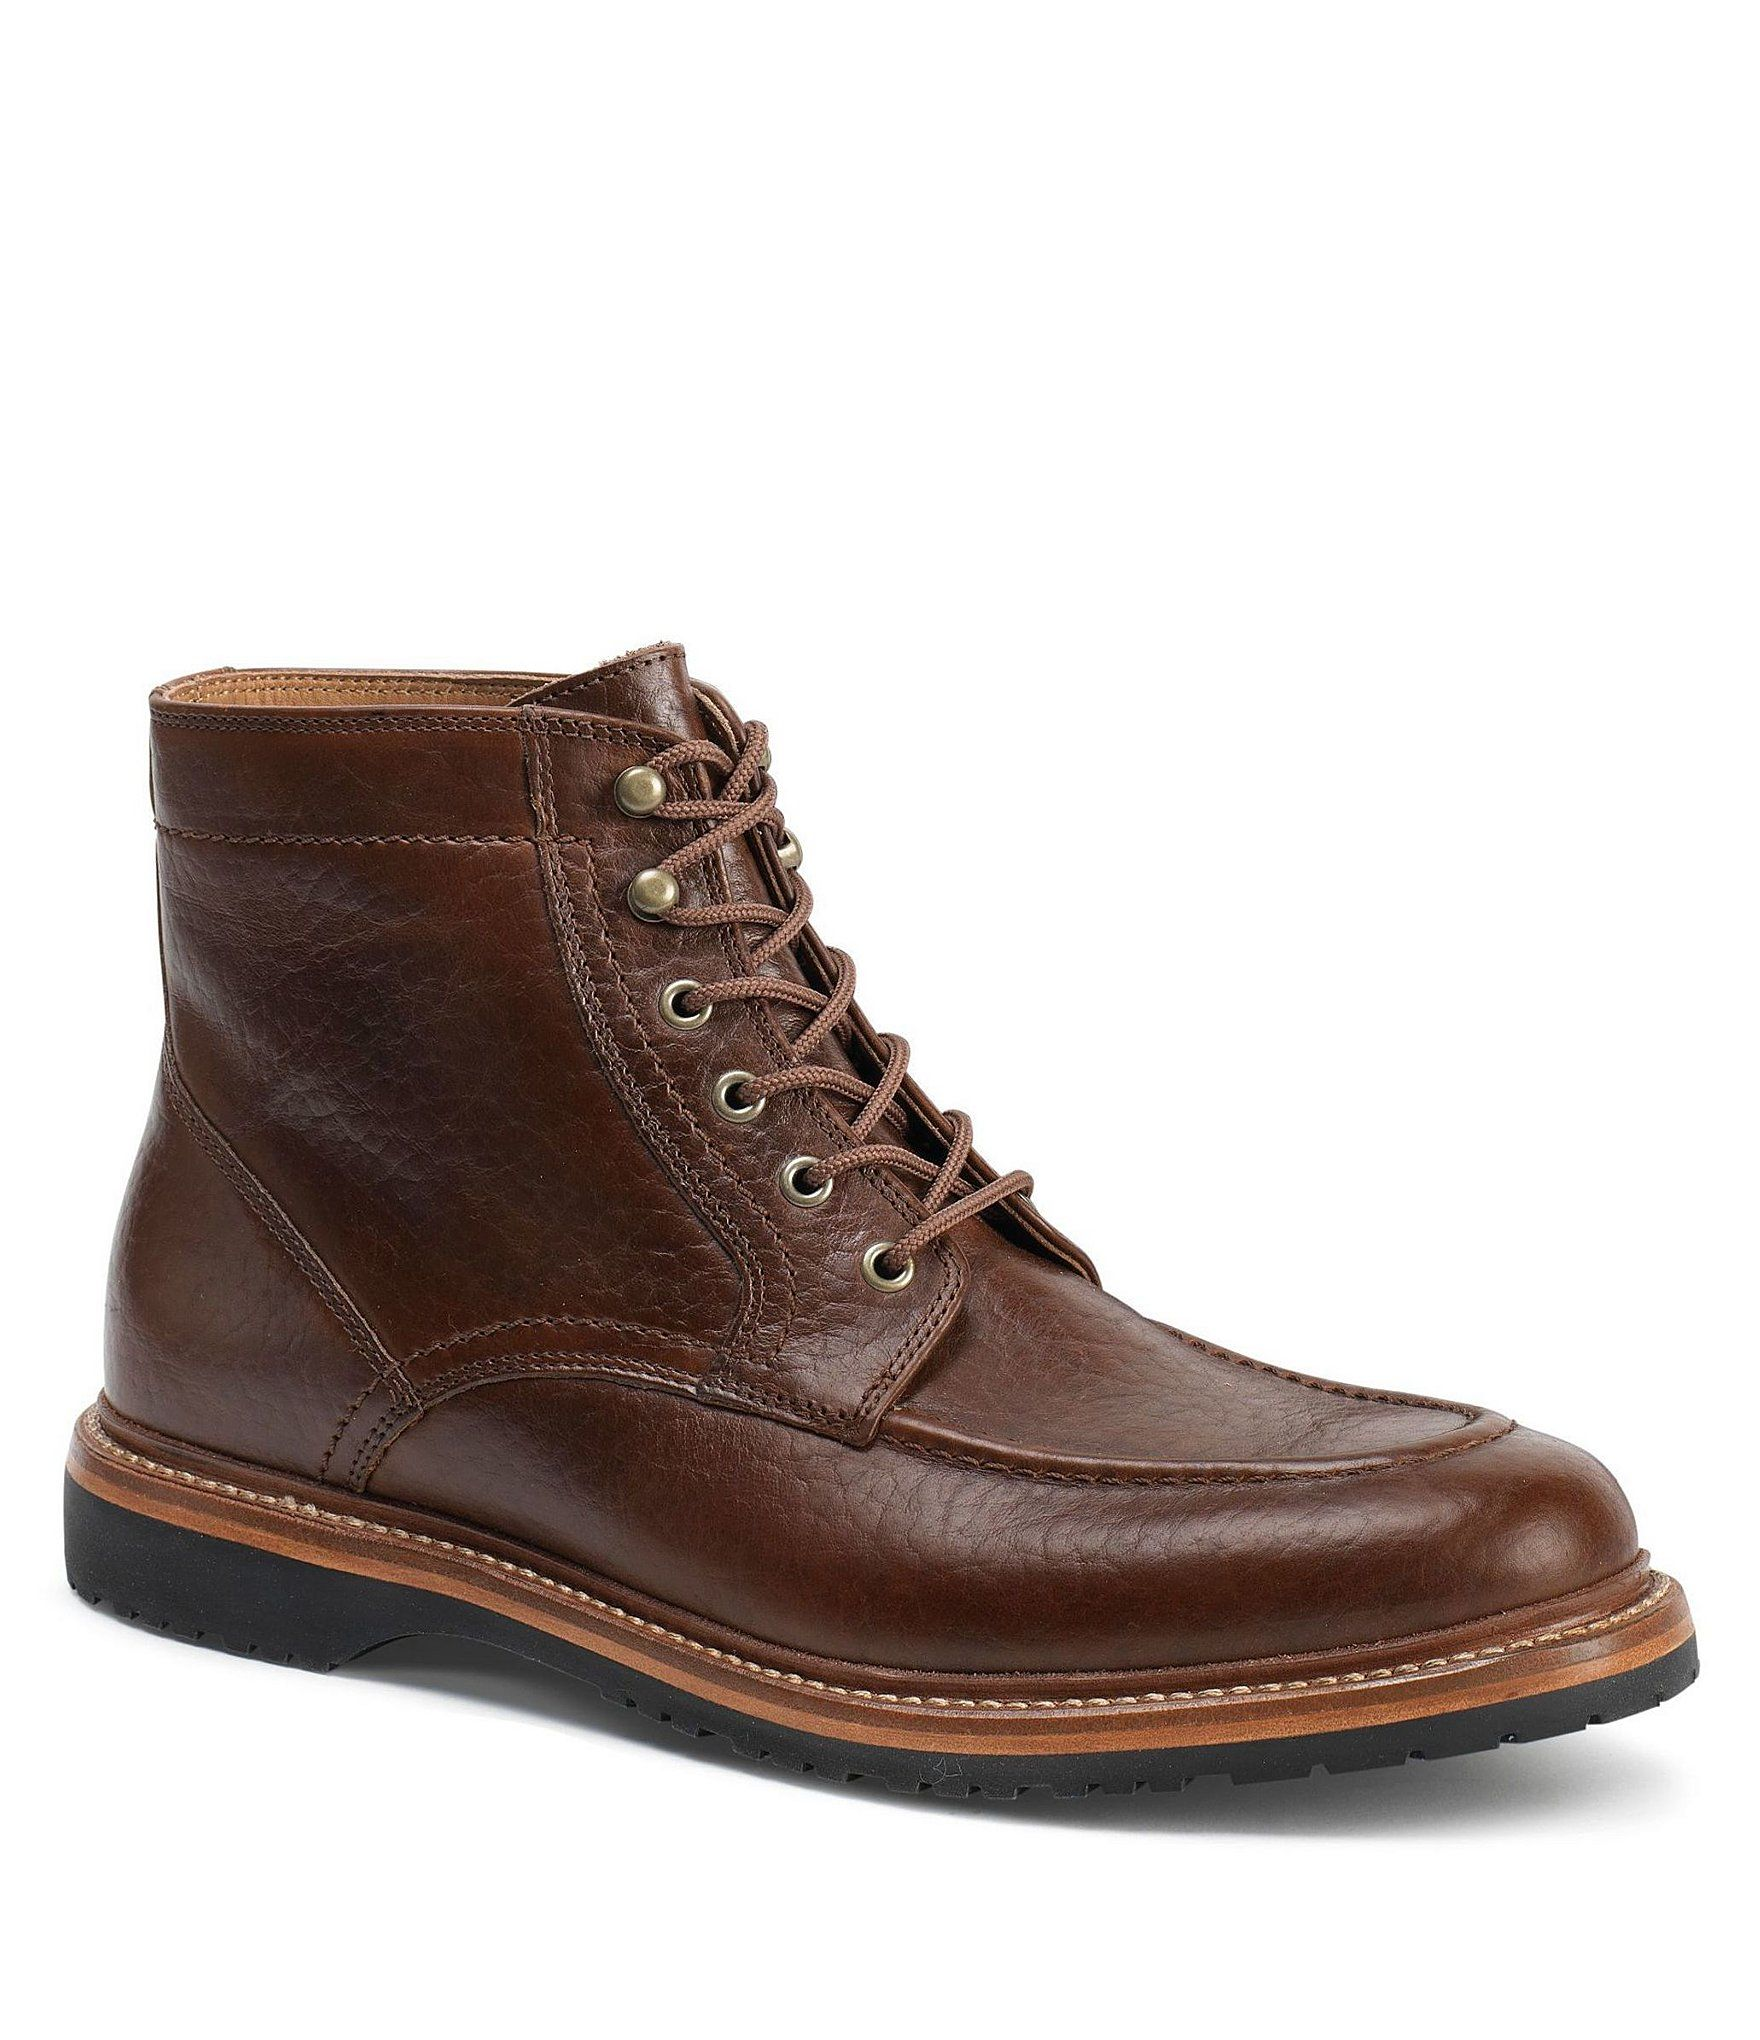 587abd0907d Trask Mens Andrew Bison Boots #Dillards | Boots for Iceland ...